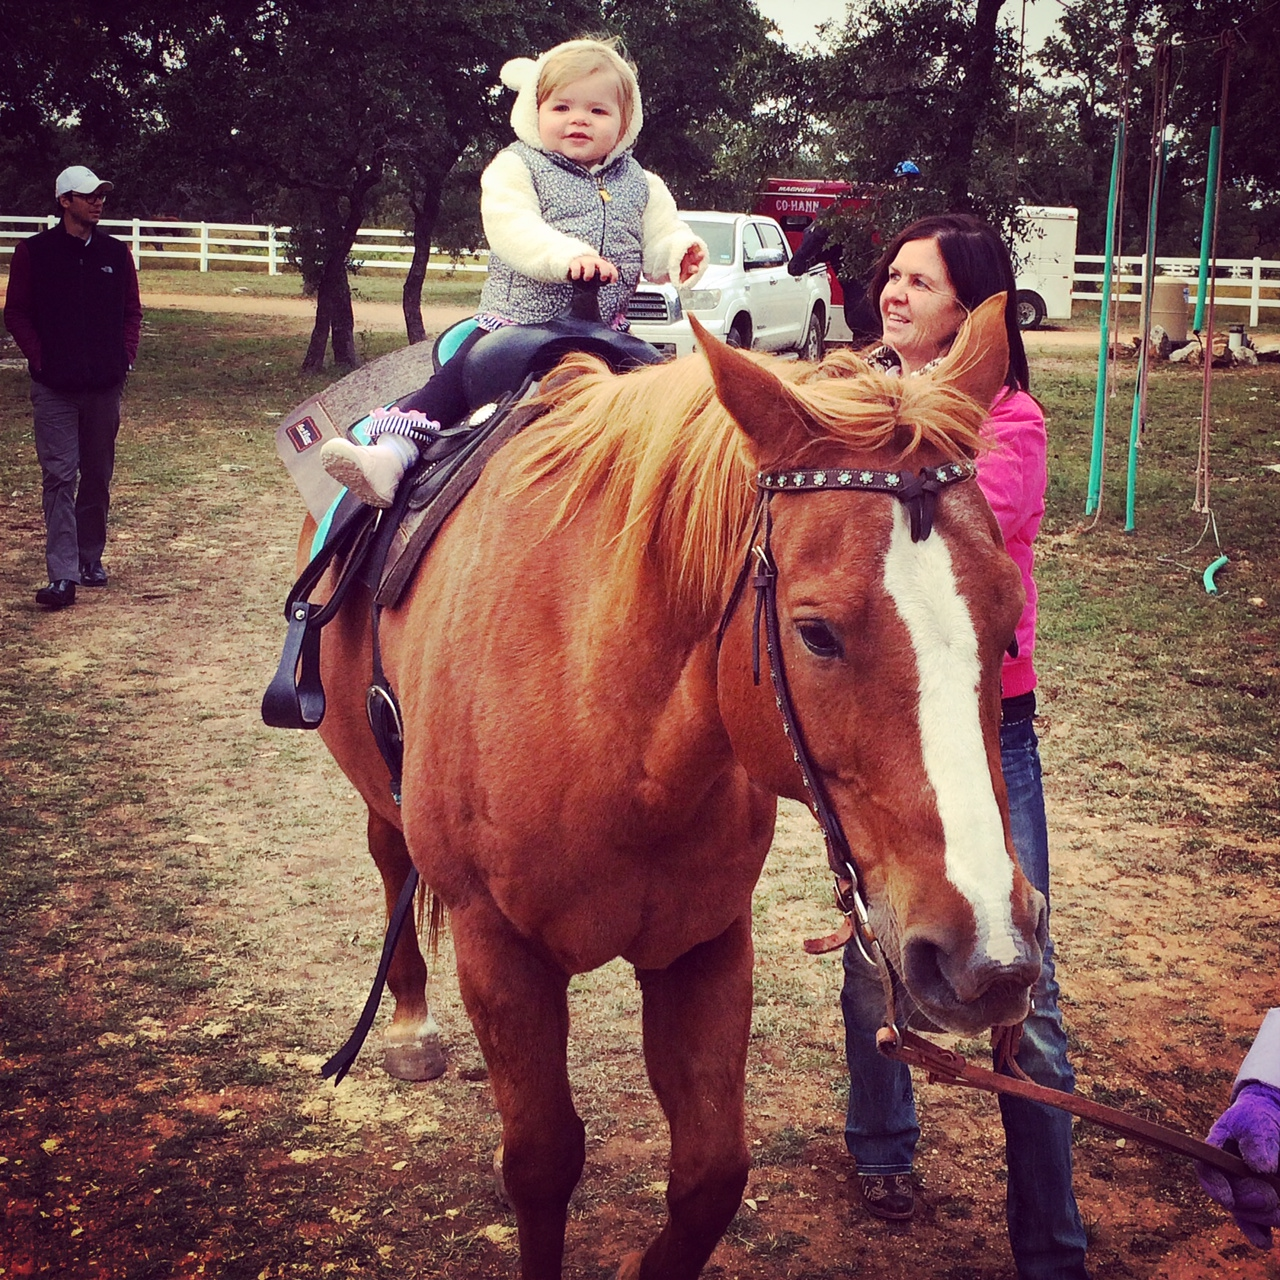 Now the real riding begins.  Pam's granddaughter, Berlynn Nov. 16, 2014